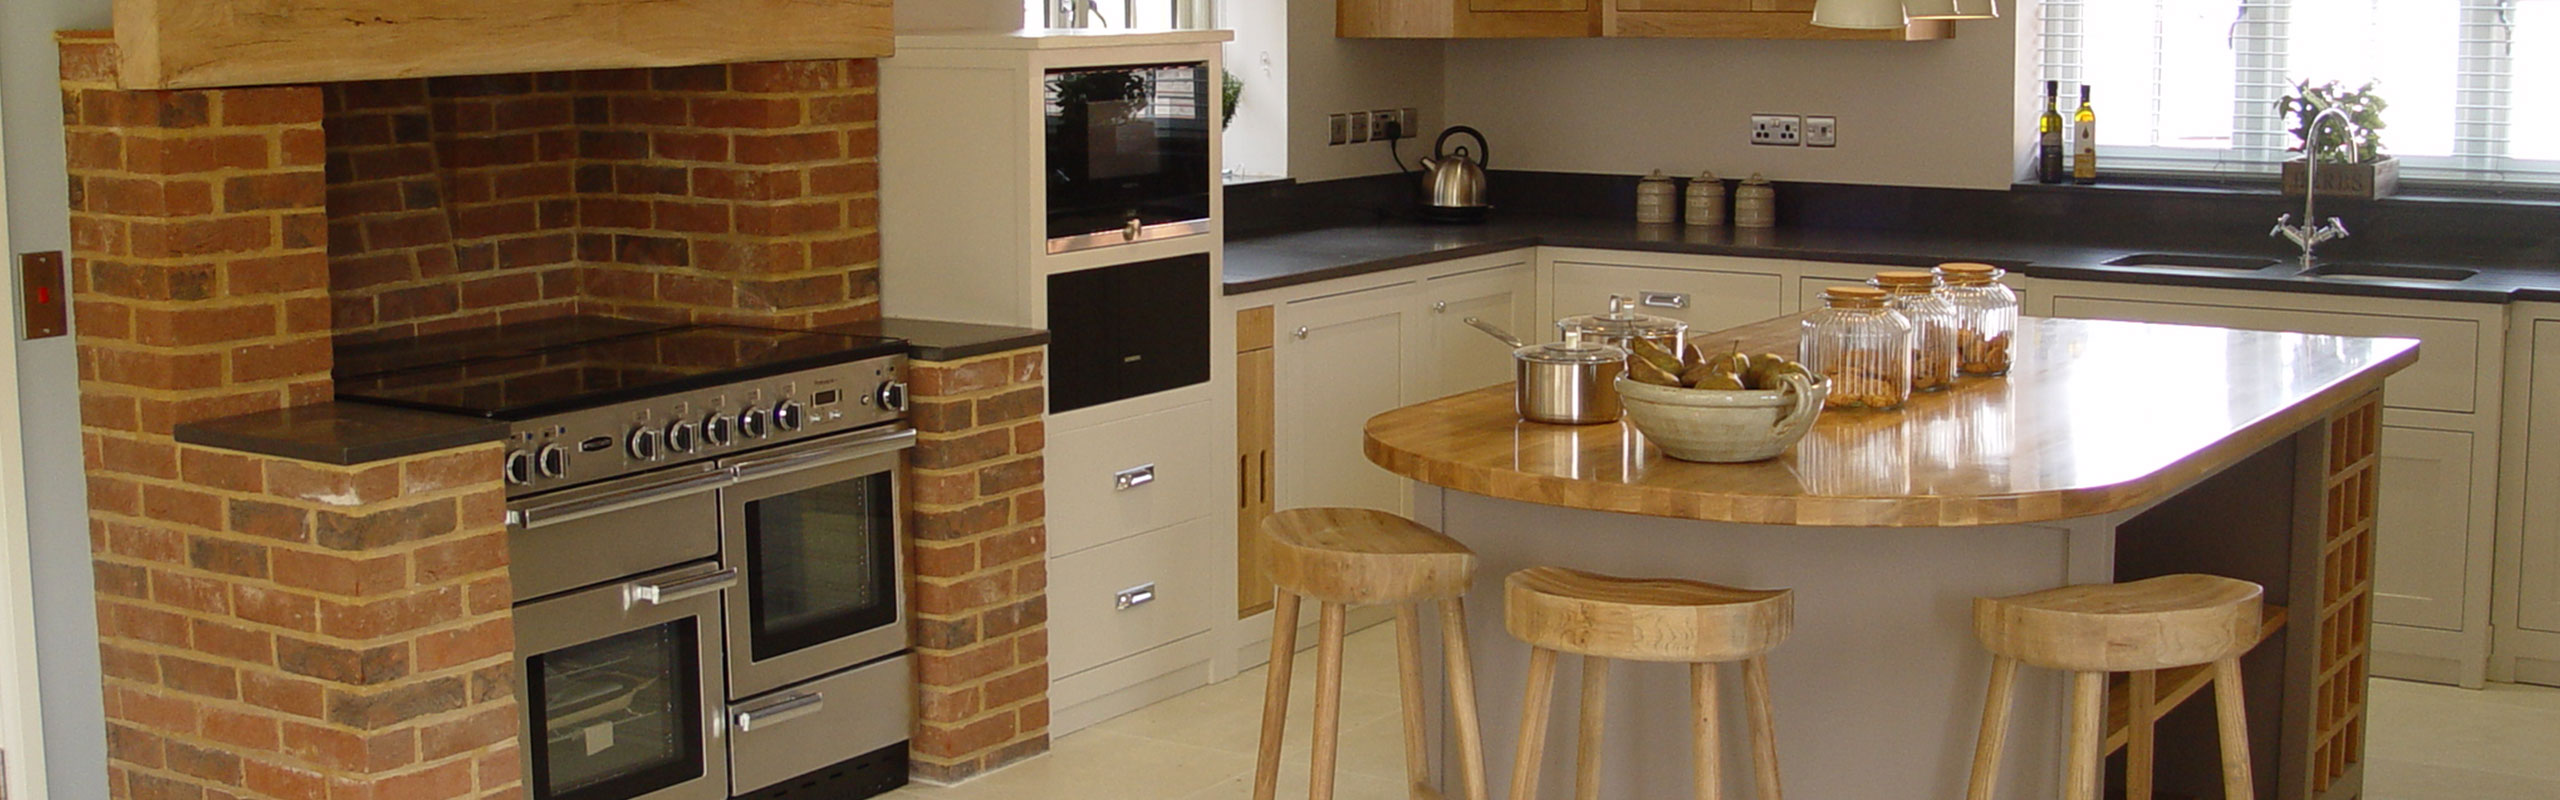 Handmade Kitchens Suffolk